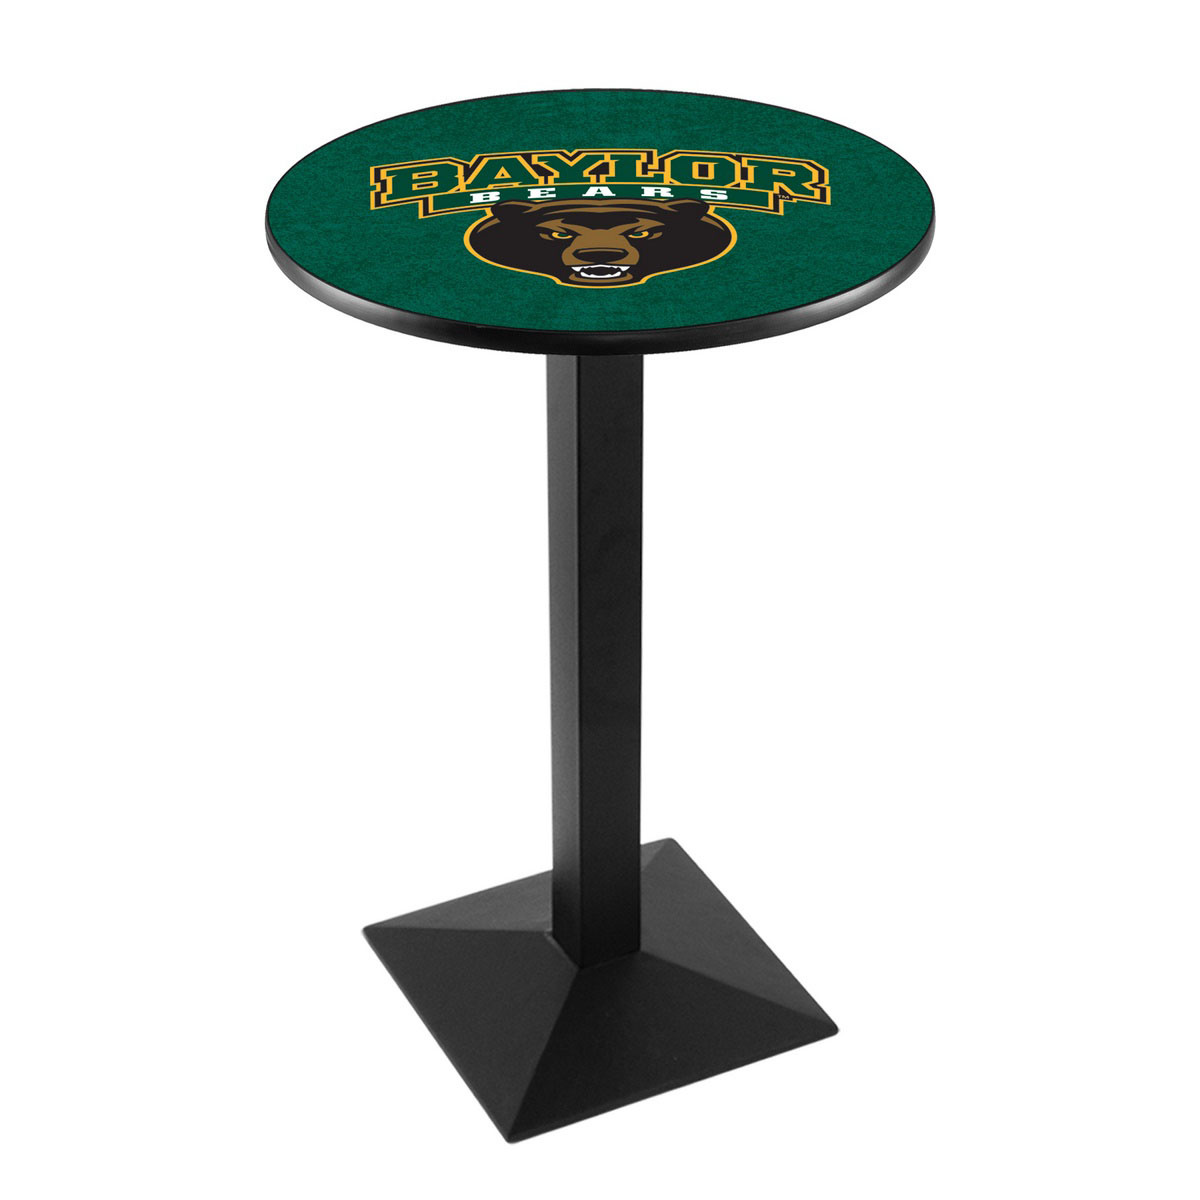 View Baylor-University-Logo-Pub-Bar-Table-Square-Stand Product Image 326